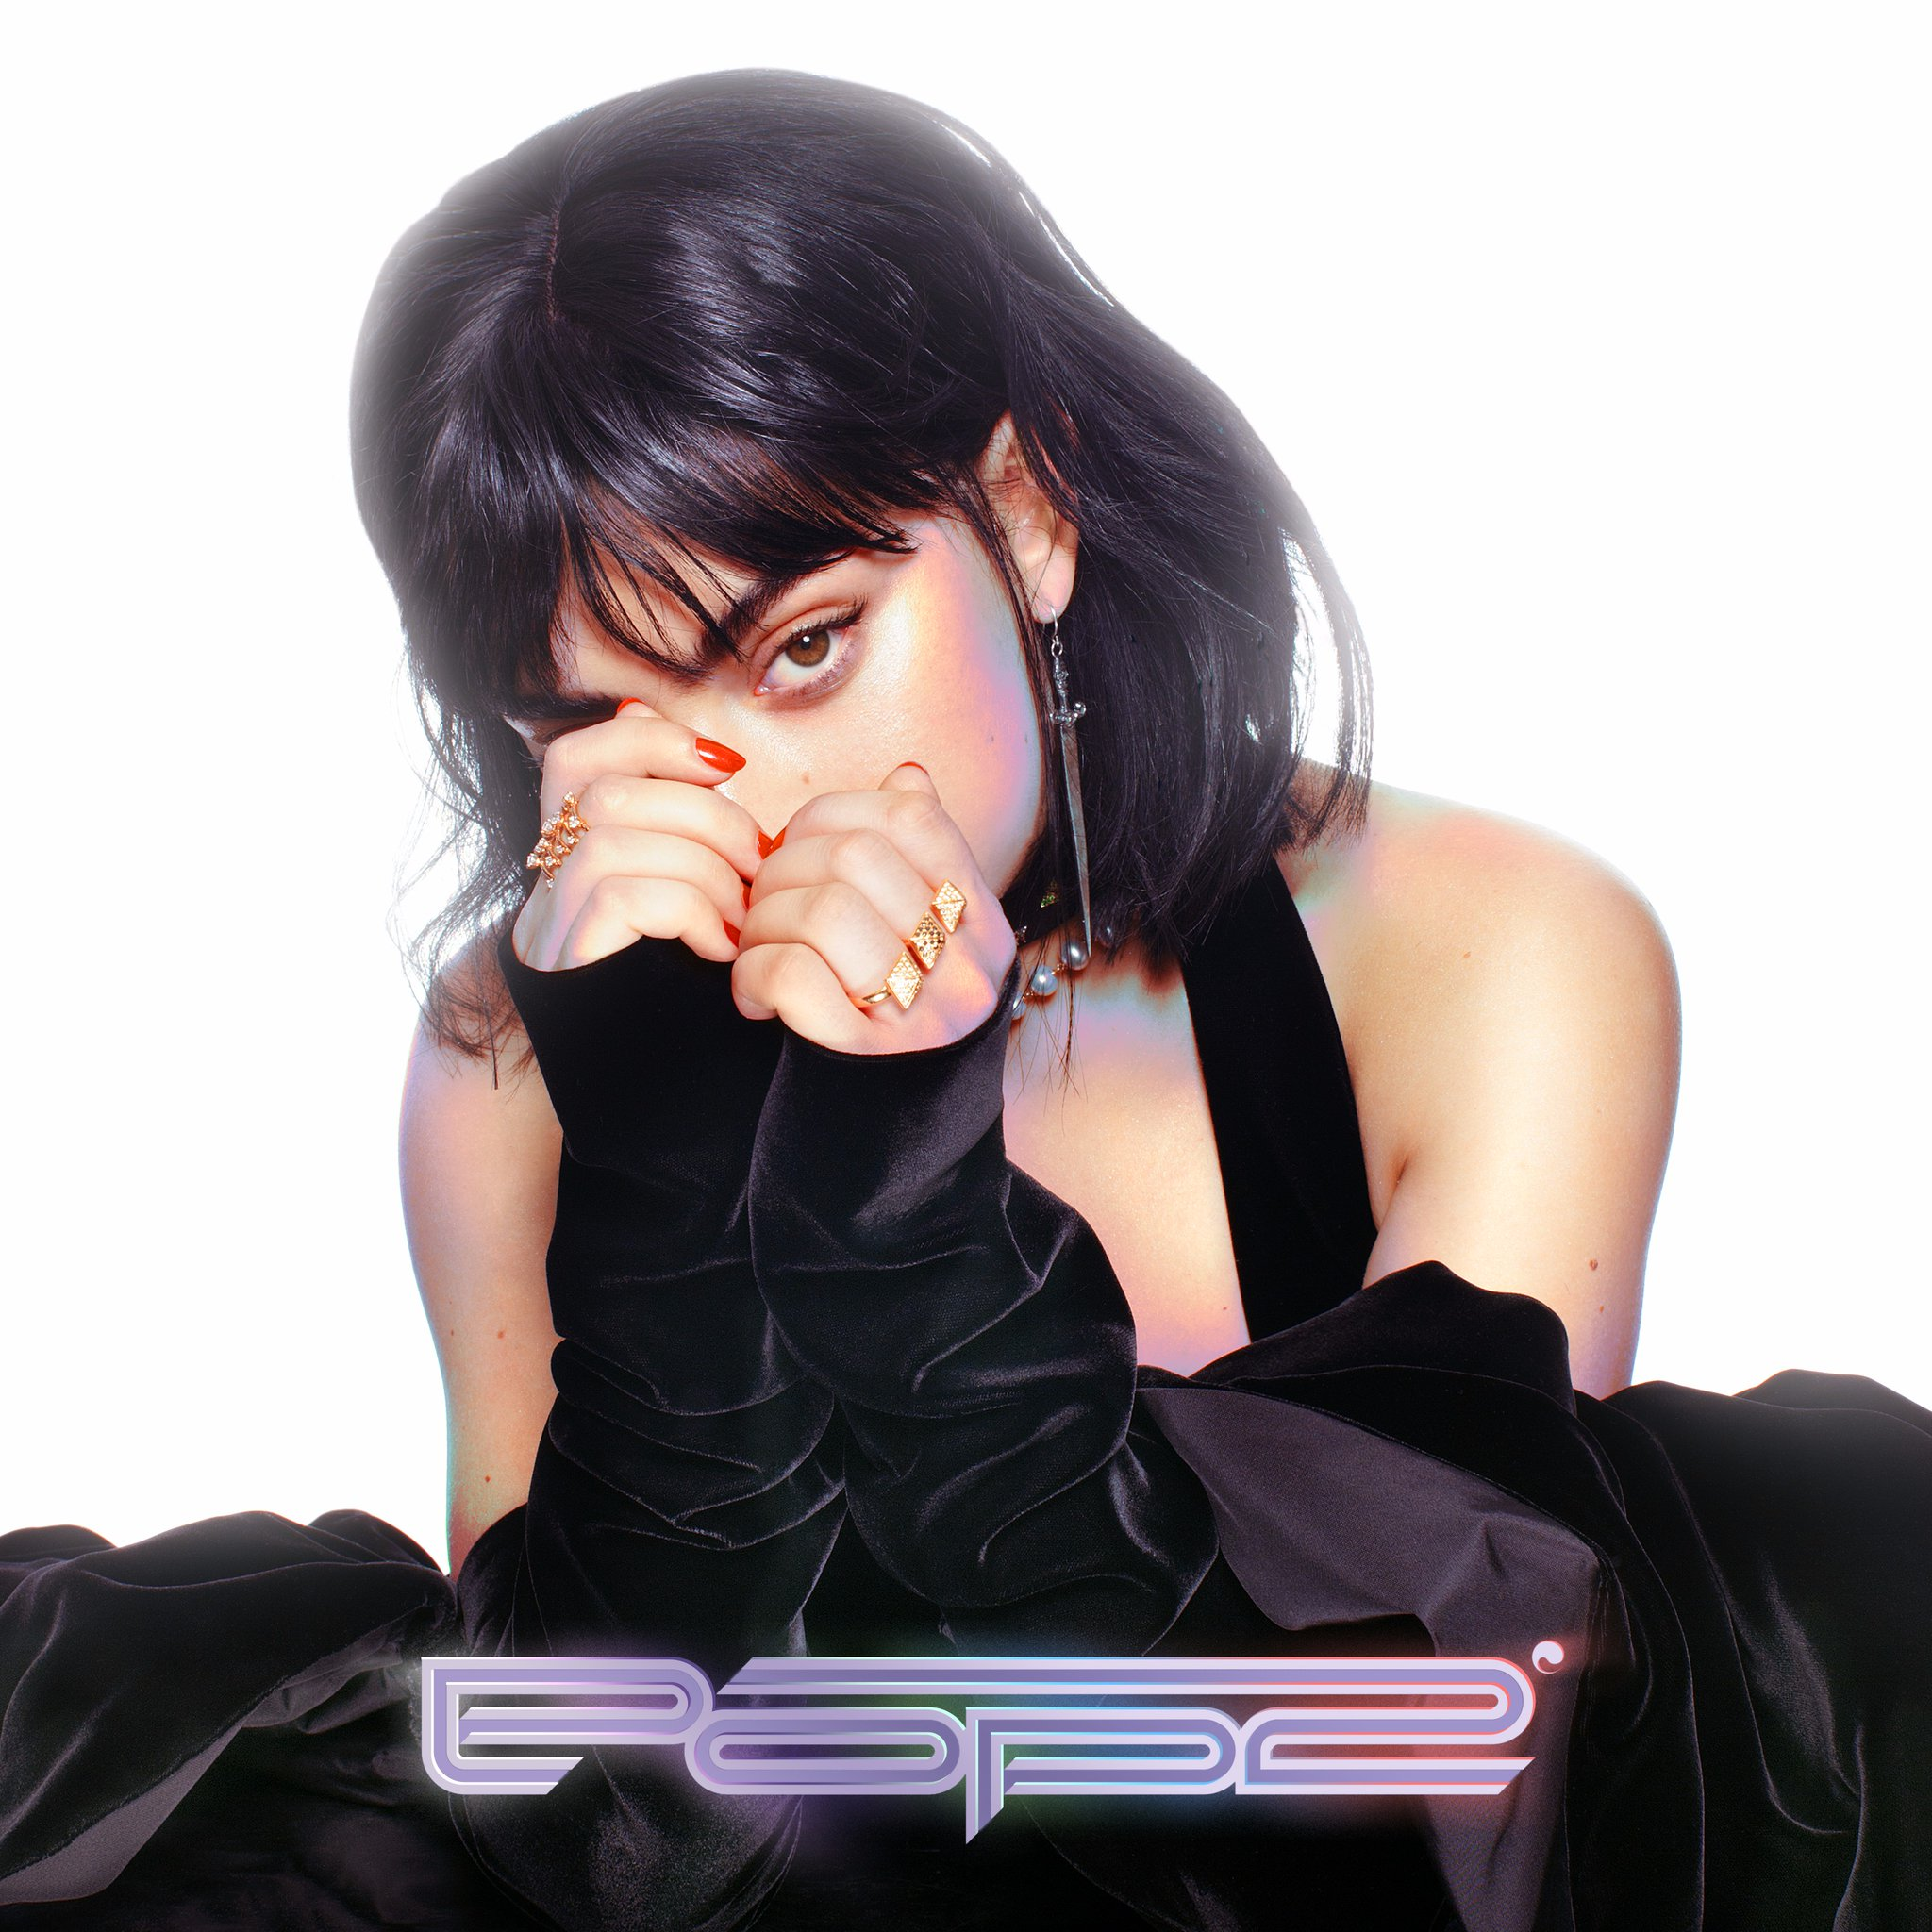 Charli-XCX-Pop-2-mixtape-cover-art.jpg